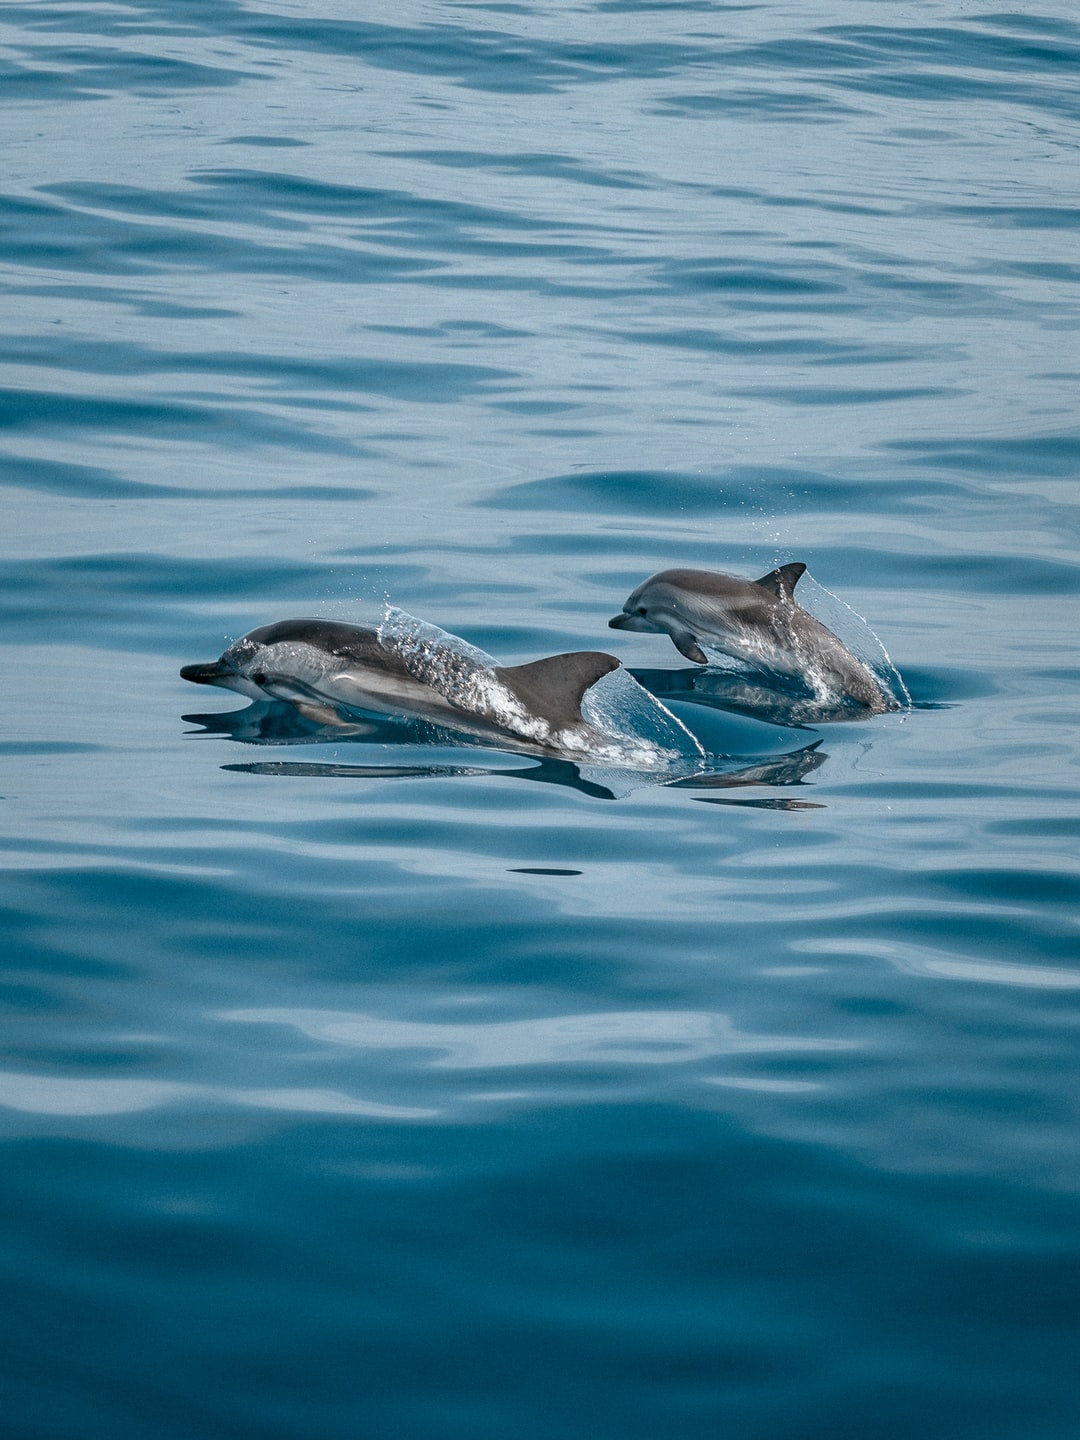 Dolphins jumping out from ocean